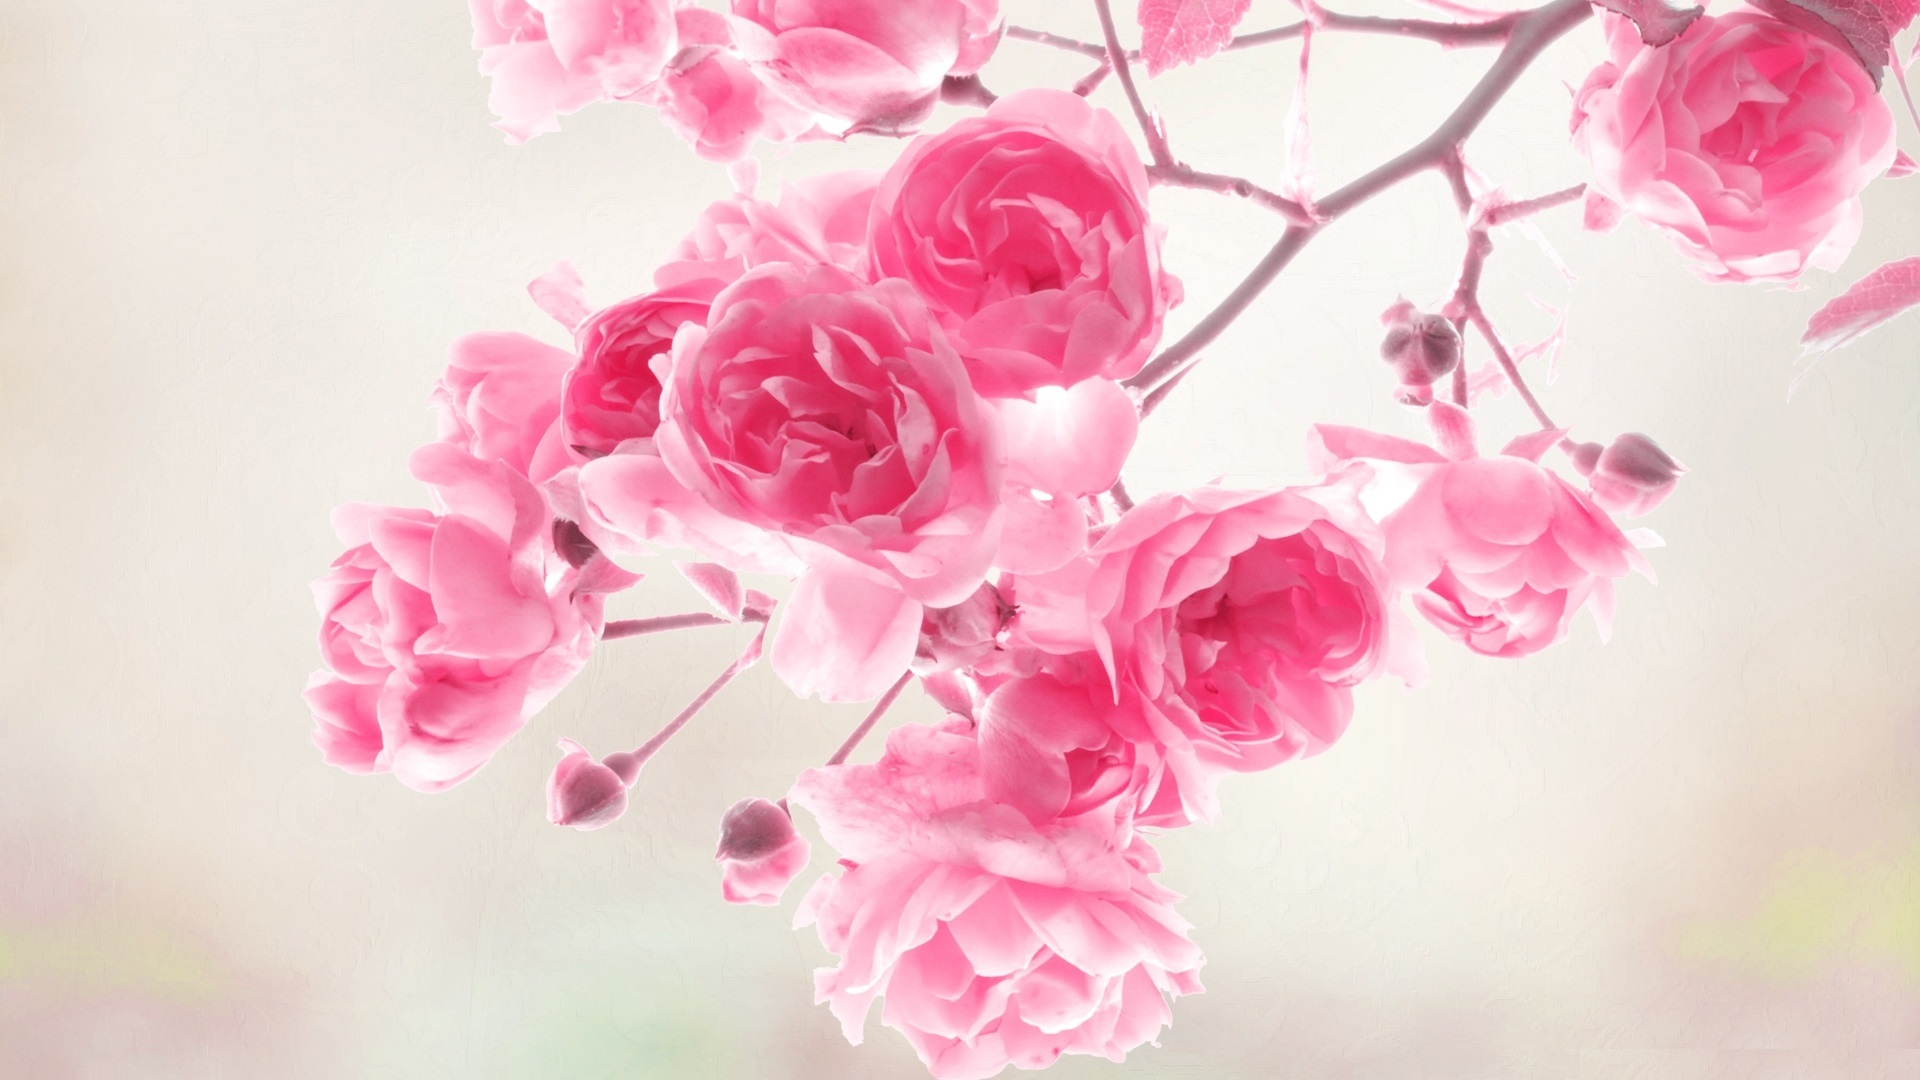 Background Images Flowers Pink 27 Wallpapers Adorable Wallpapers